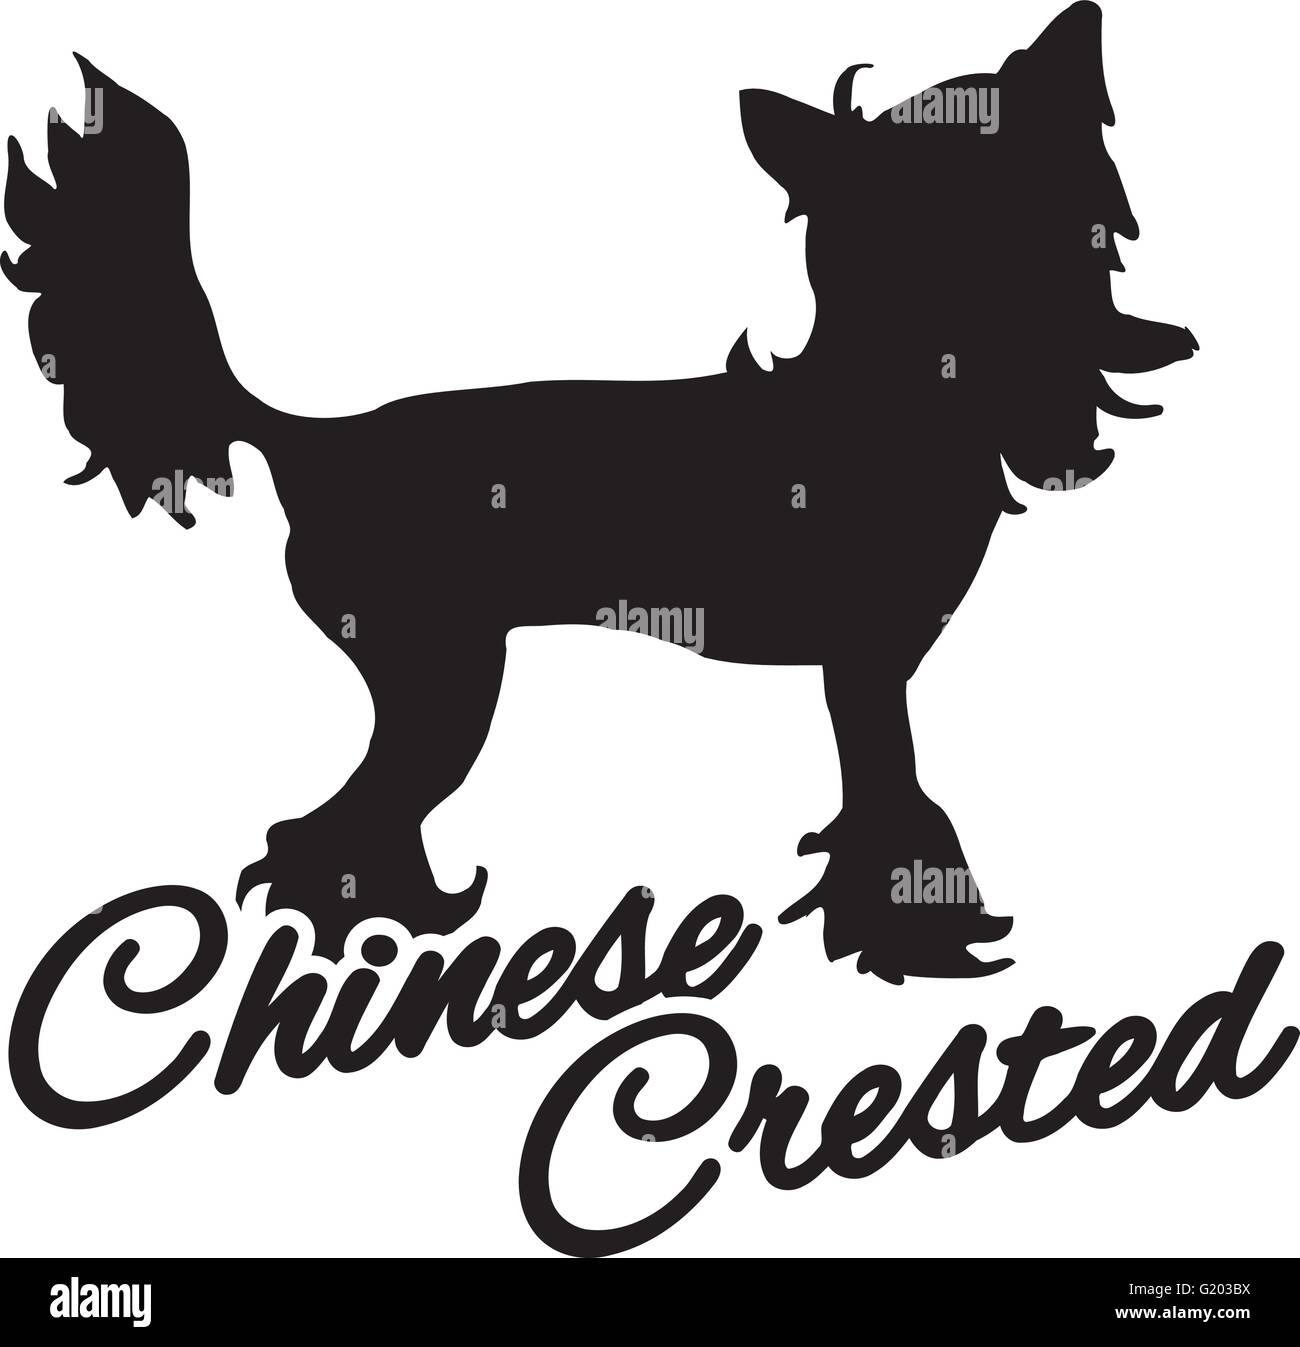 Chinese crested with breed name - Stock Vector